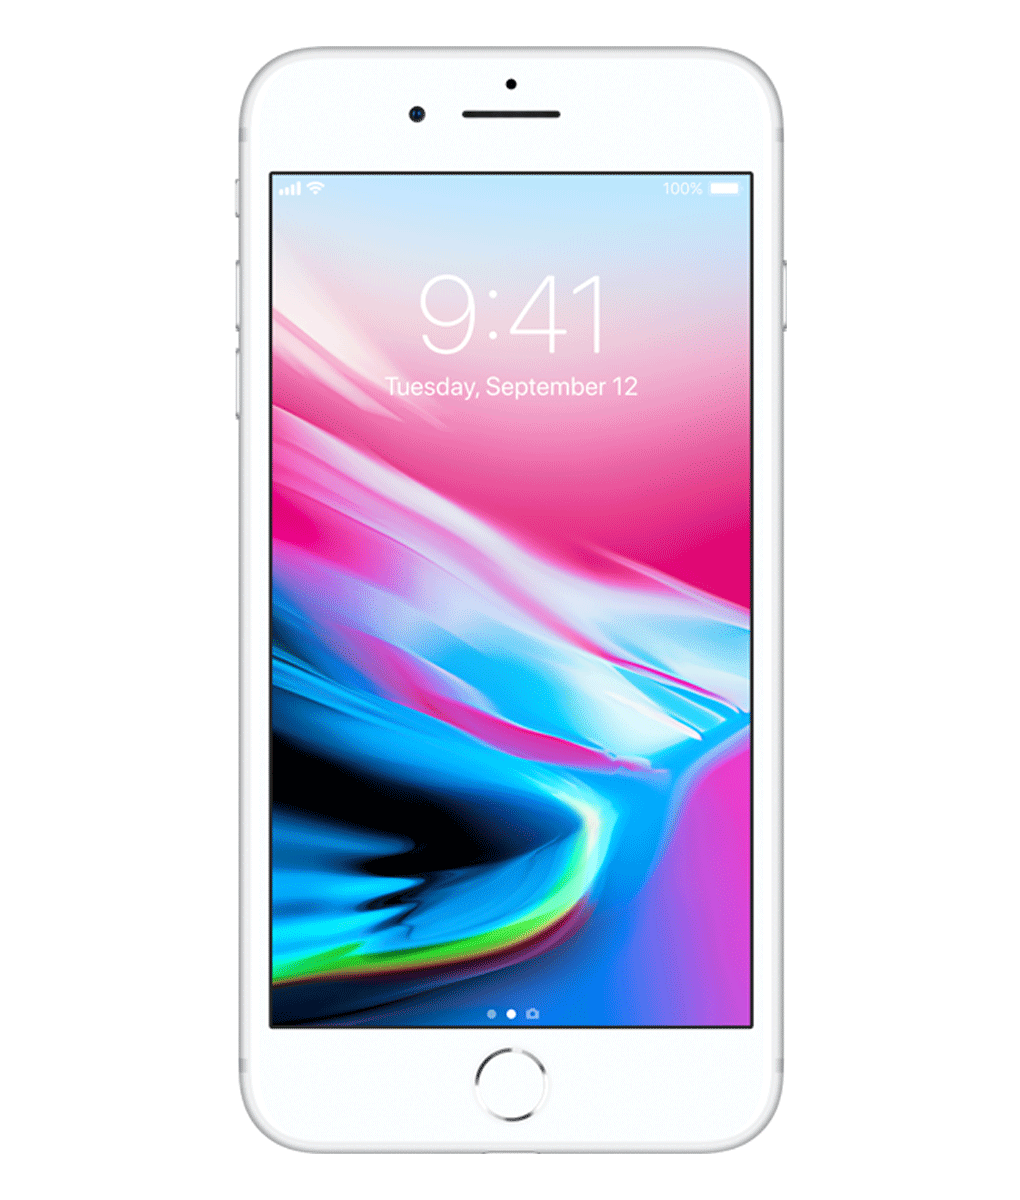 iphone8-plus-sasktel-boltmobile-silver-front.png